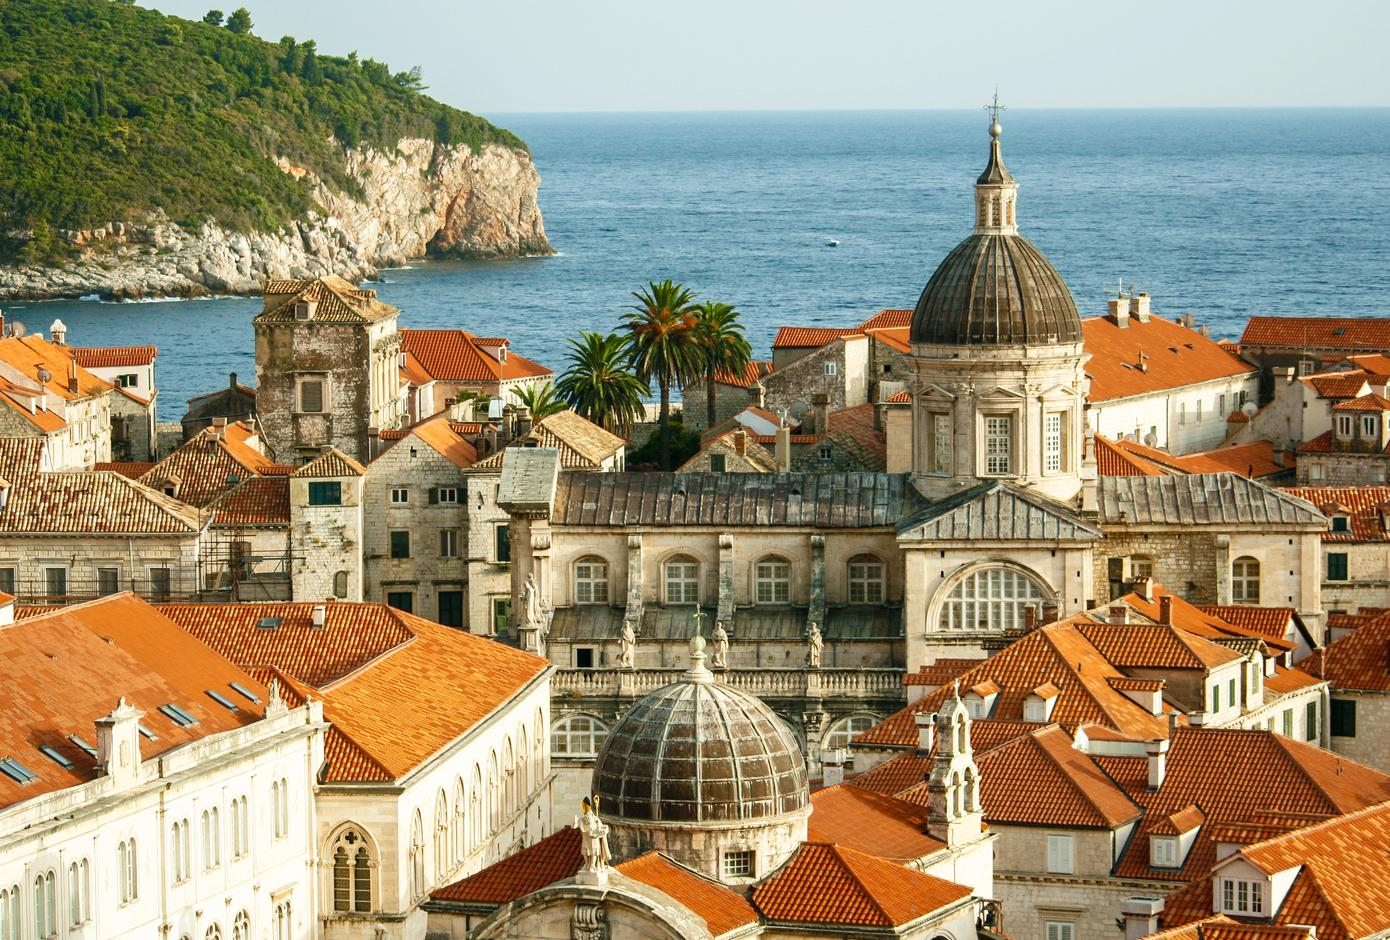 View of Dubrovnik's Old Town with historic buldings, and the Adriatic Sea on the back.